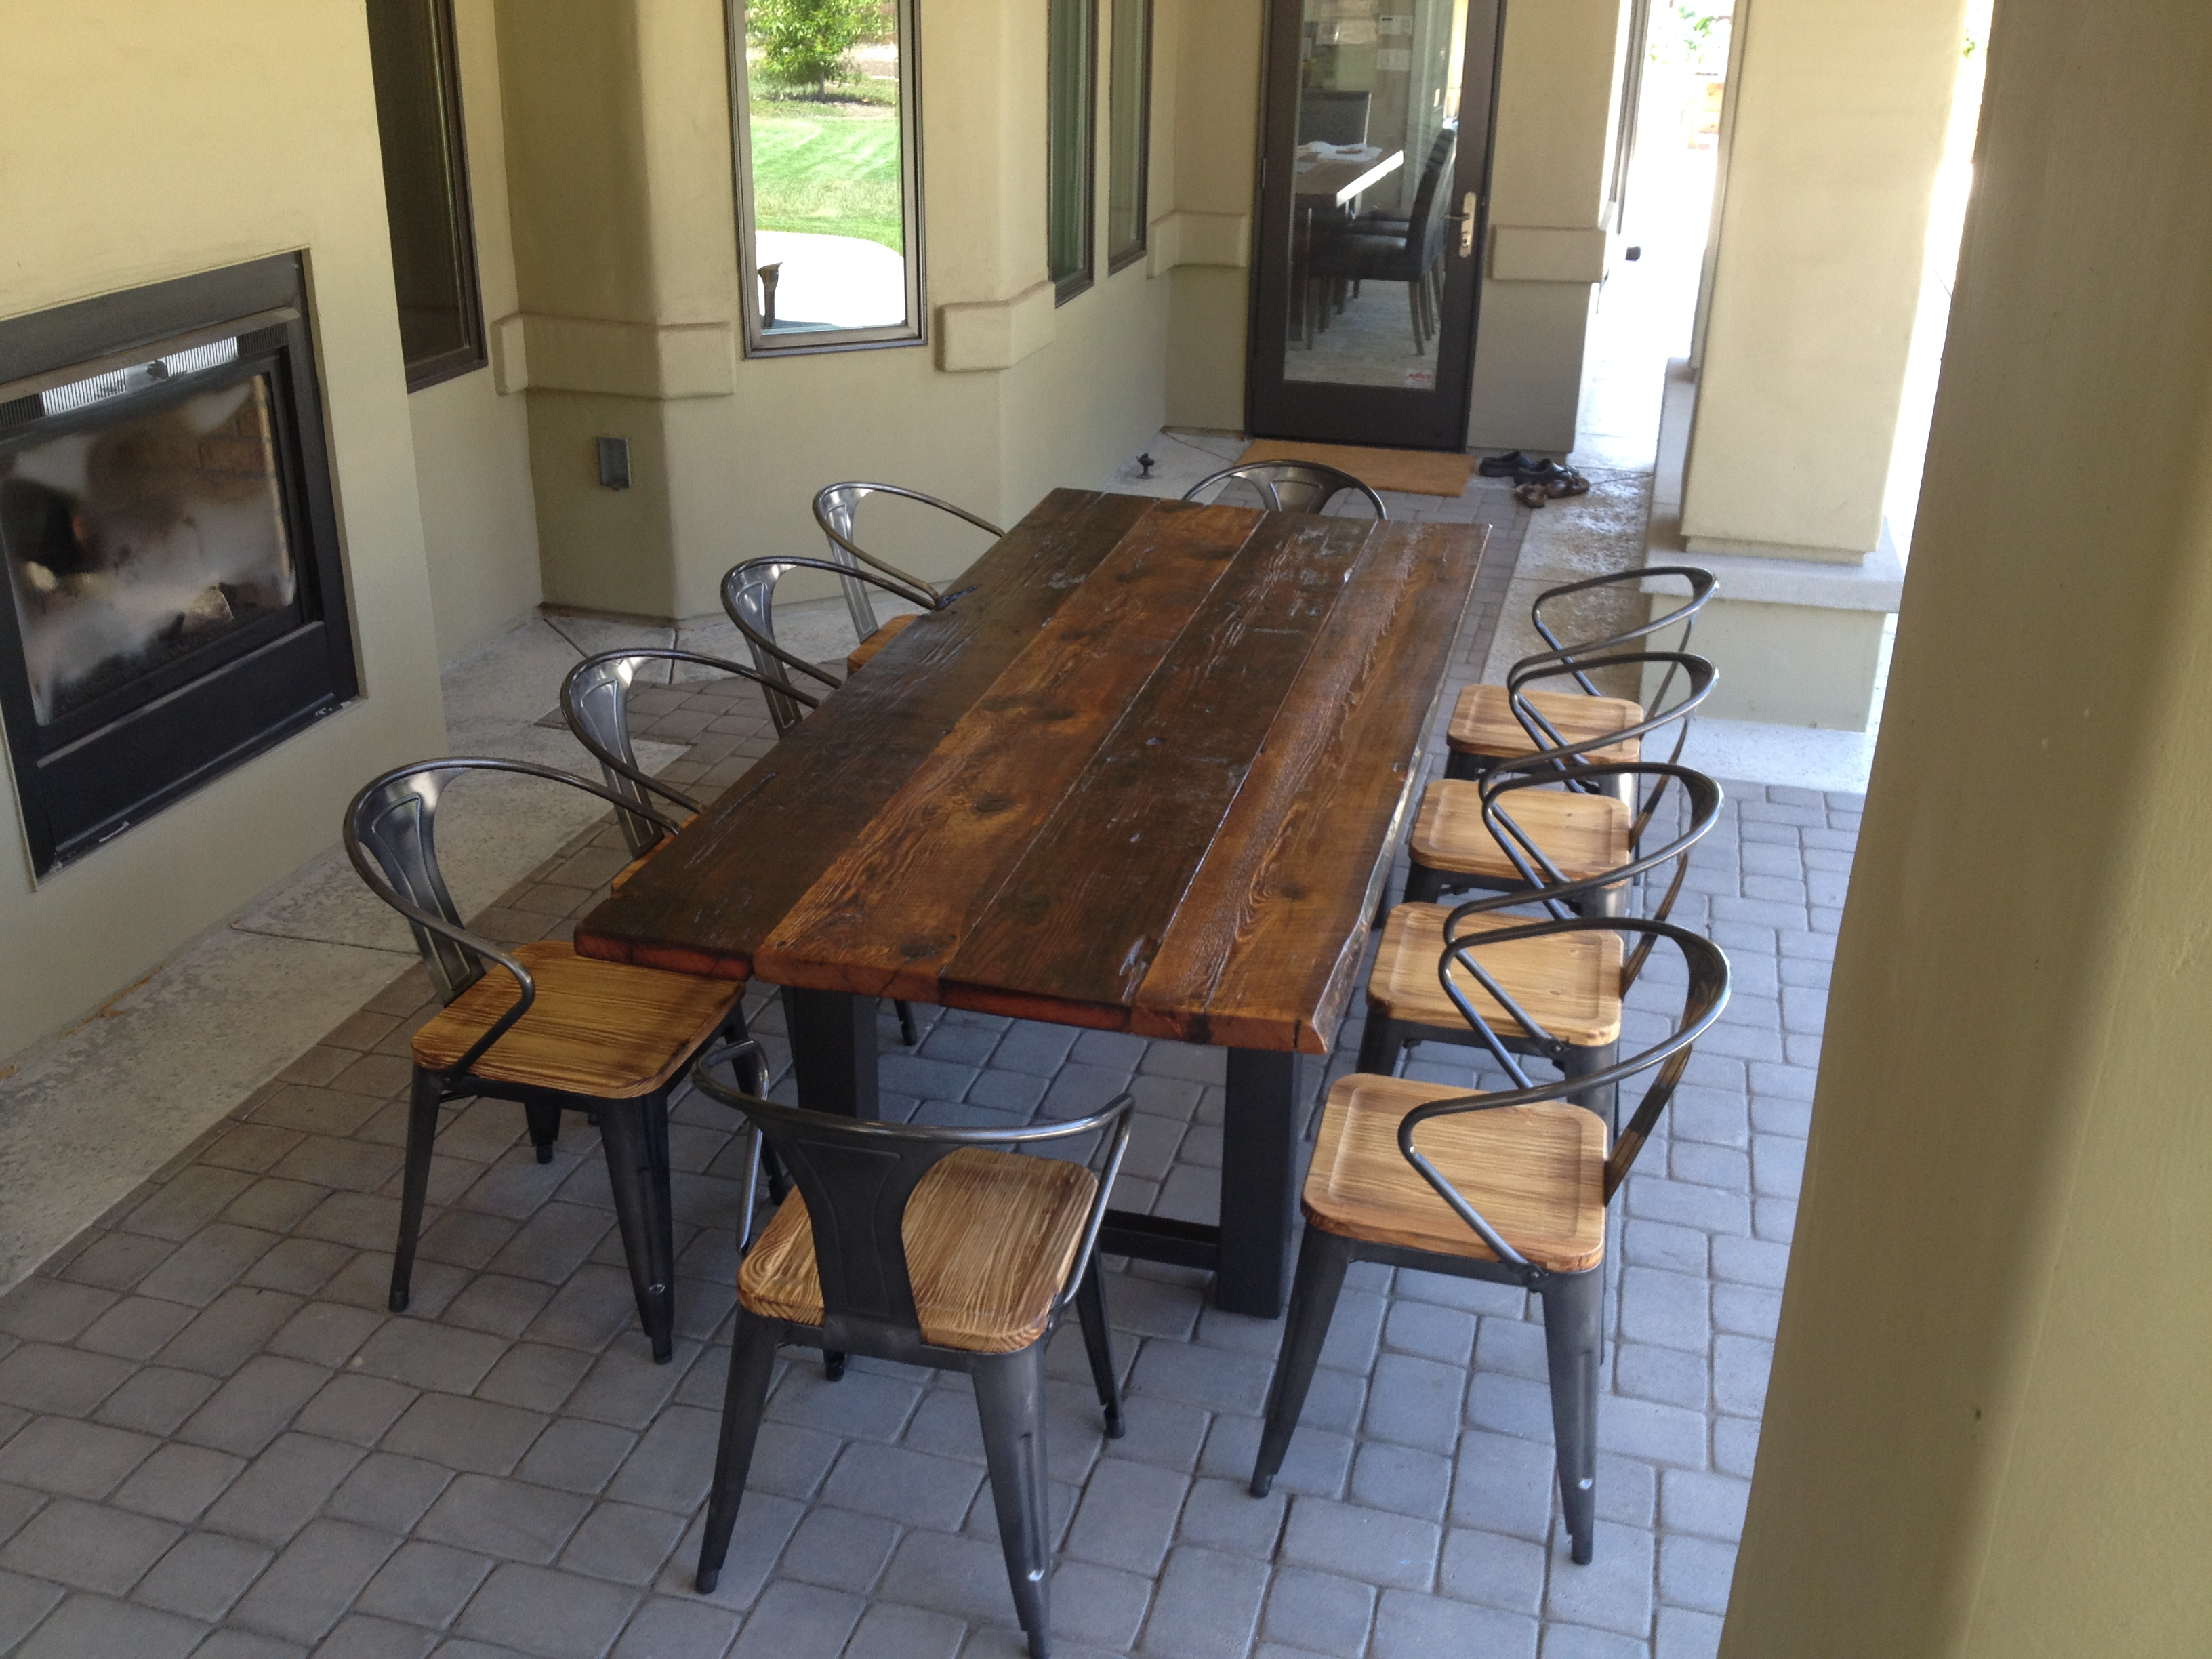 This Reclaimed Wood And Steel Outdoor Dining Table Was Custom Built To